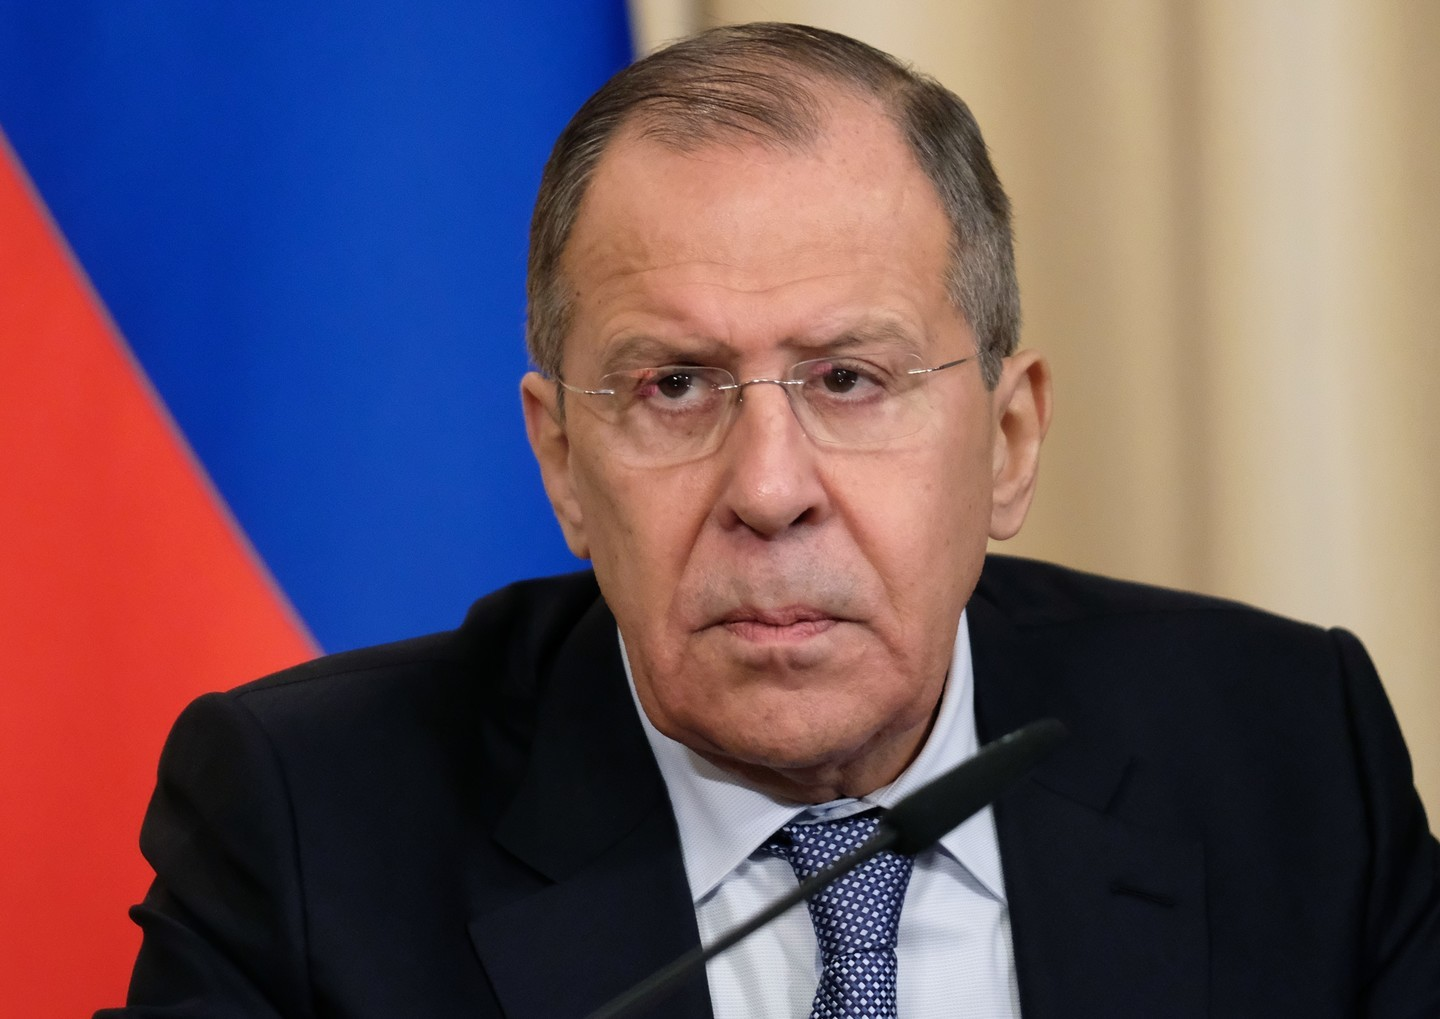 Lavrov tells about the agenda of video conference with Foreign Ministers of China and India